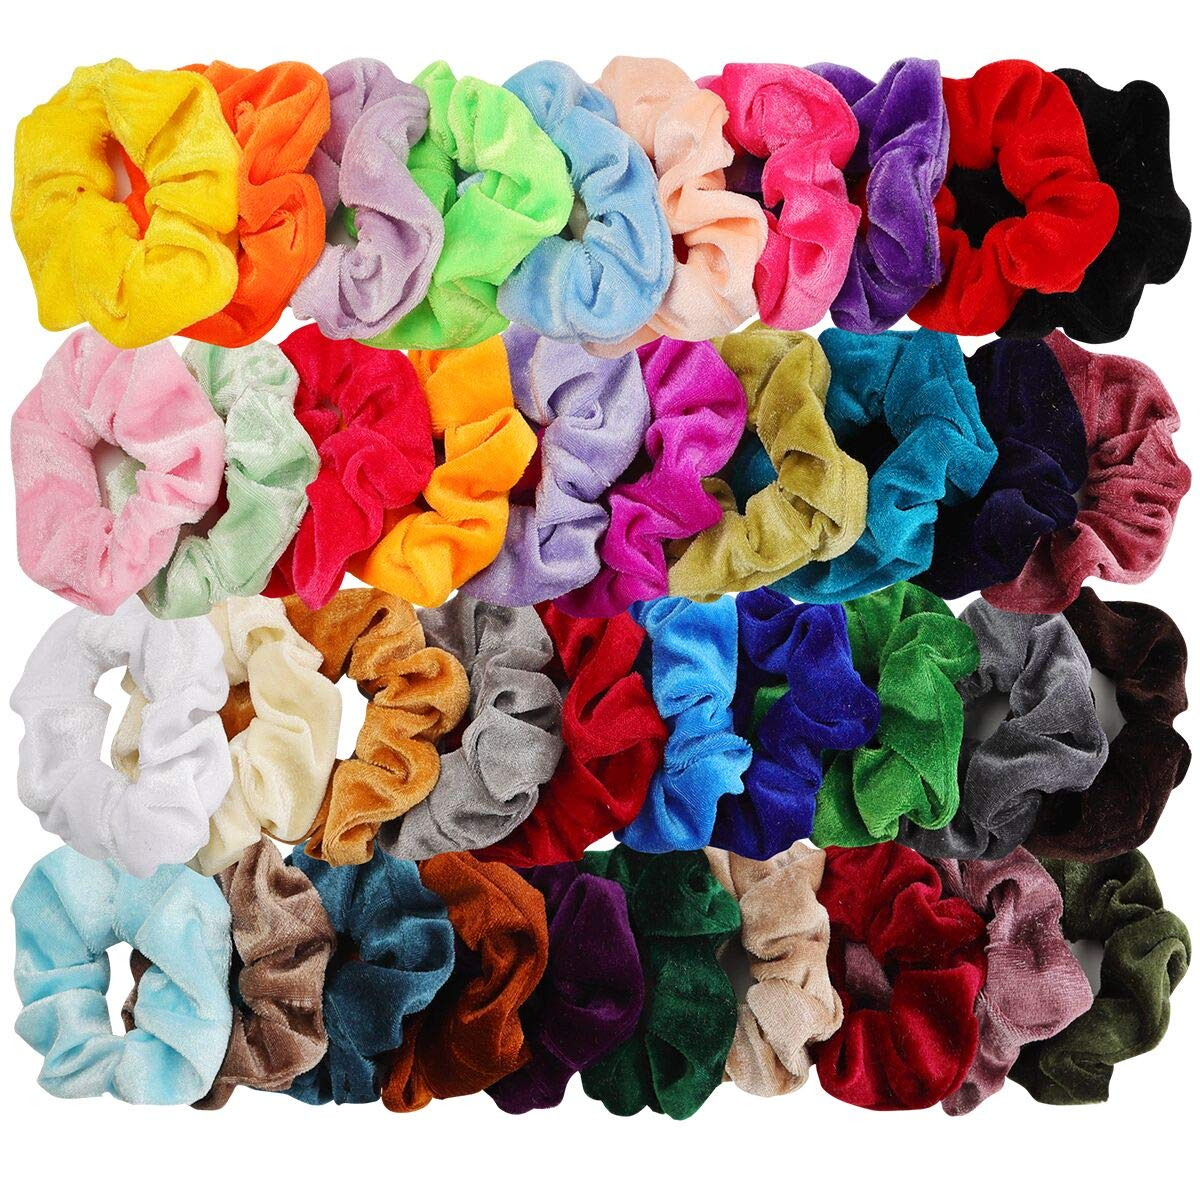 Mandydov 40pcs Hair Scrunchies Velvet Elastic Hair Bands Scrunchy Hair Ties Ropes 40 Pack Scrunchies for Women or Girls Hair Accessories - 40 Assorted Colors Scrunchies by Mandydov (Image #1)